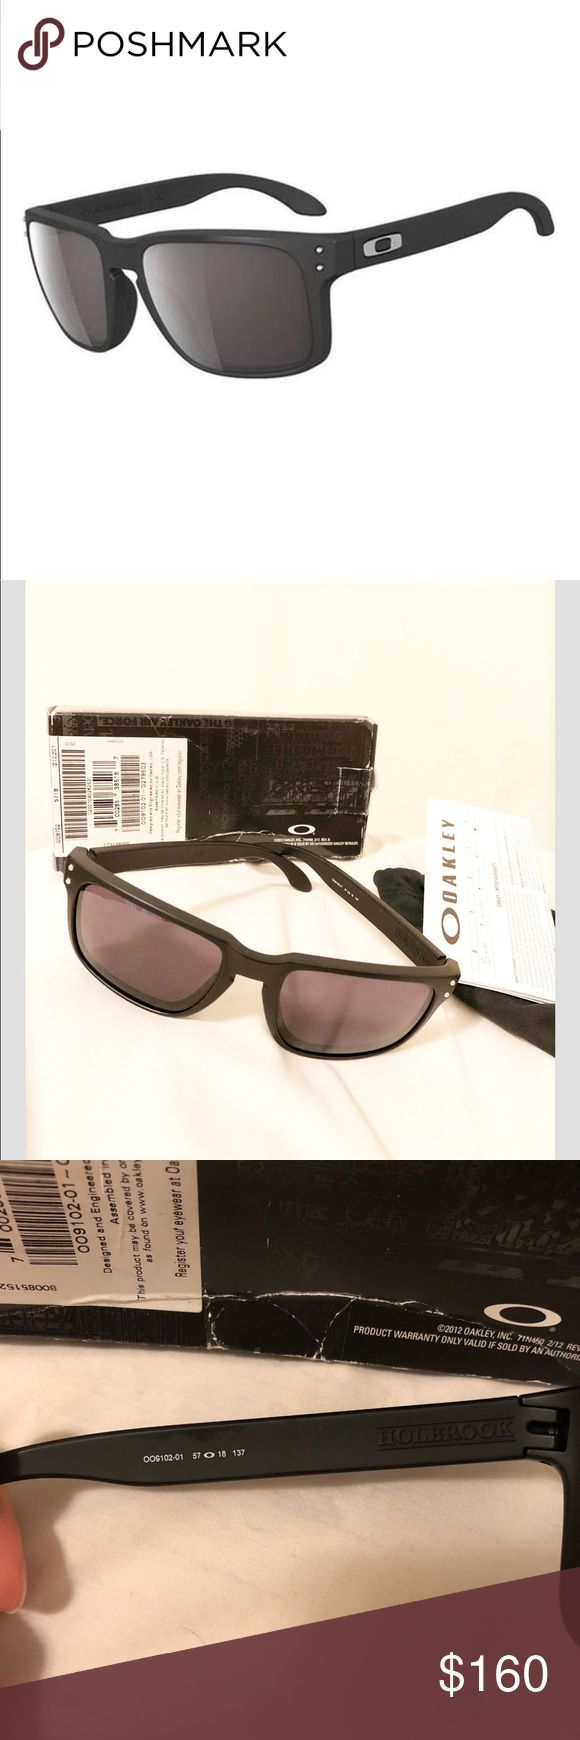 Oakley Holbrook Item #: OO9102-01 Features of Oakley Holbrook Stress-resistant O-Matter frame Plutonite polycarbonate lenses Three-Point Fit 6.0 base lens curvature for optimal peripheral vision Lenses filter out 100% of UVA, UVB, UVC and harmful blue light up to 400 nm Metal bolt accents in front frame Metal icon accents Optical precision and impact resistance meet or exceed ANSI Z87.1 optical and basic impact standards comes with box, dust bag 100% authentic Oakley Accessories Glasses